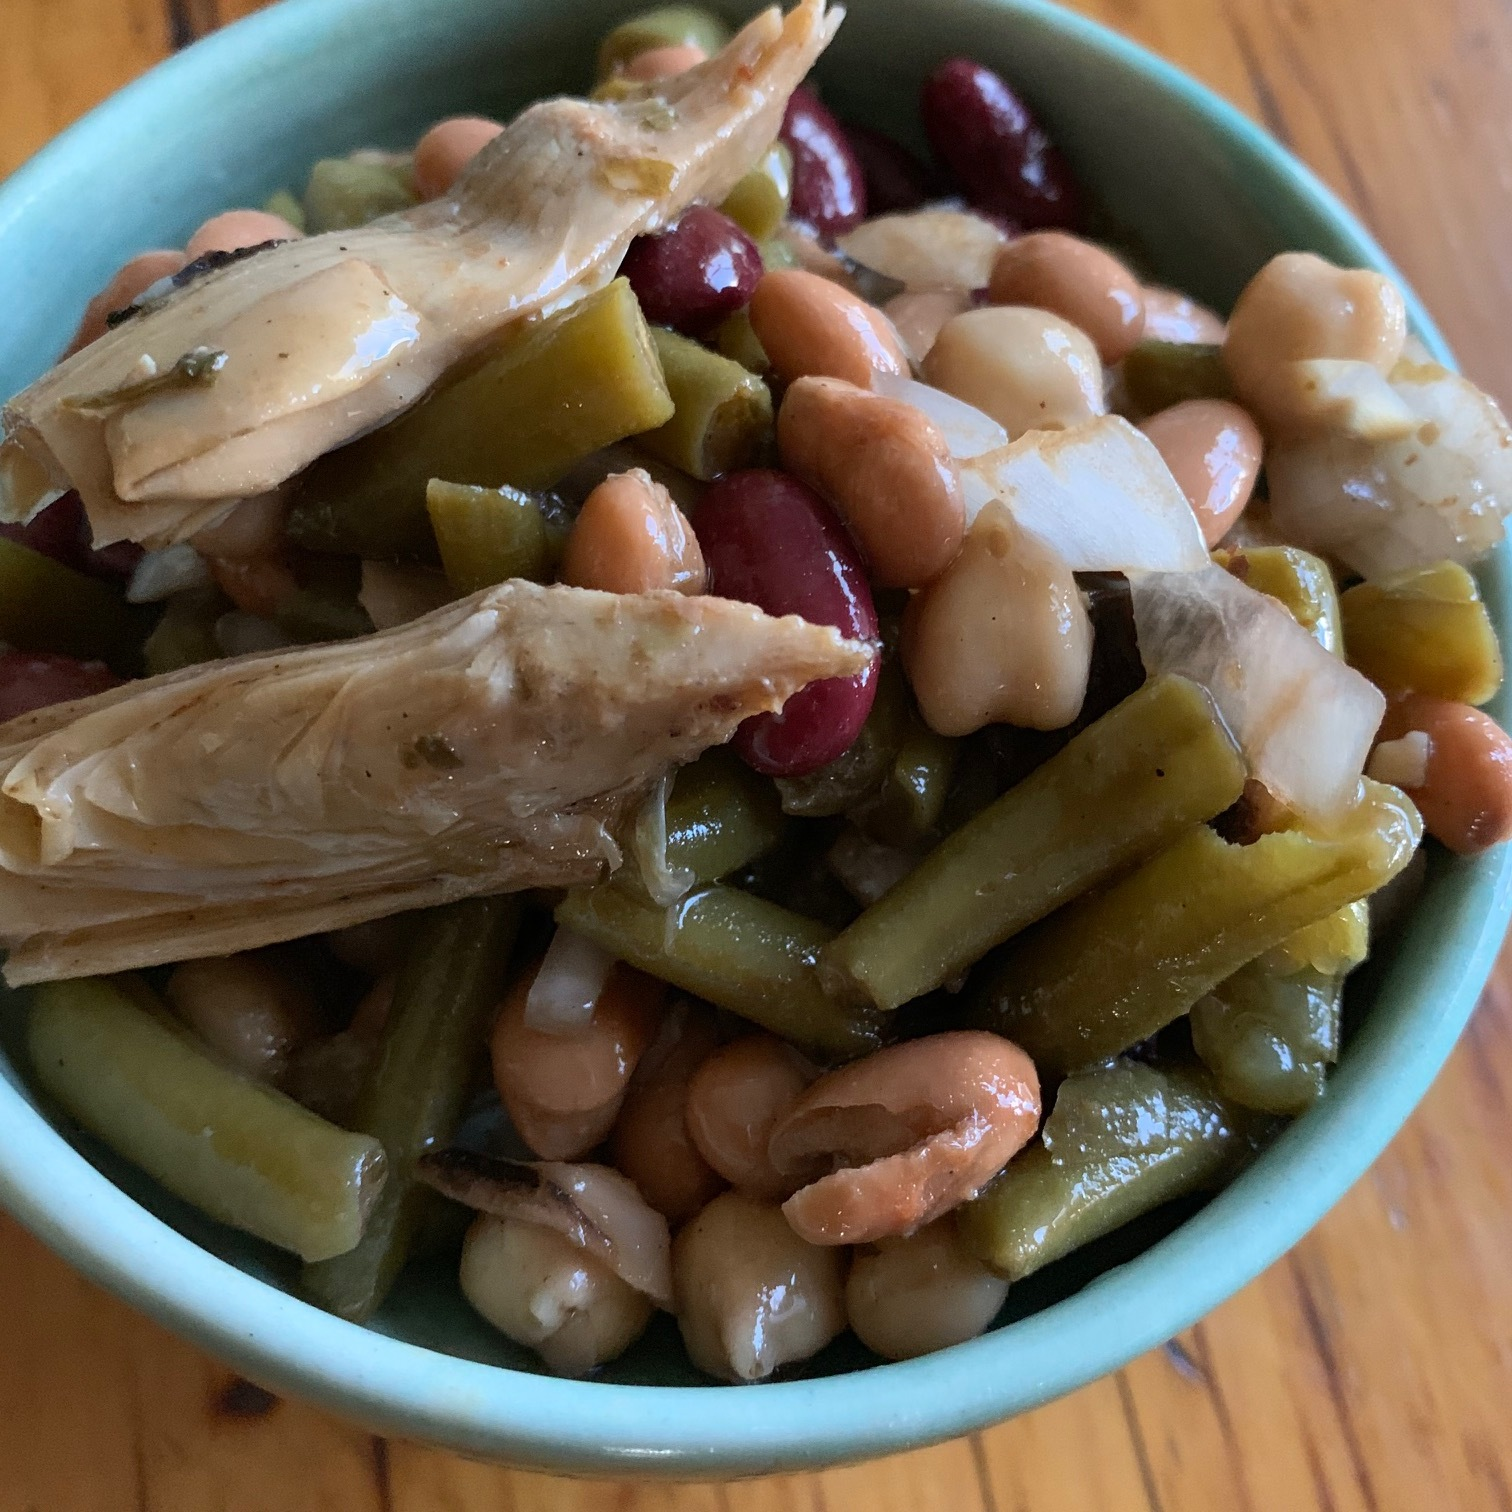 4 beans and artichokes salad goes is a delicious summer side dish.